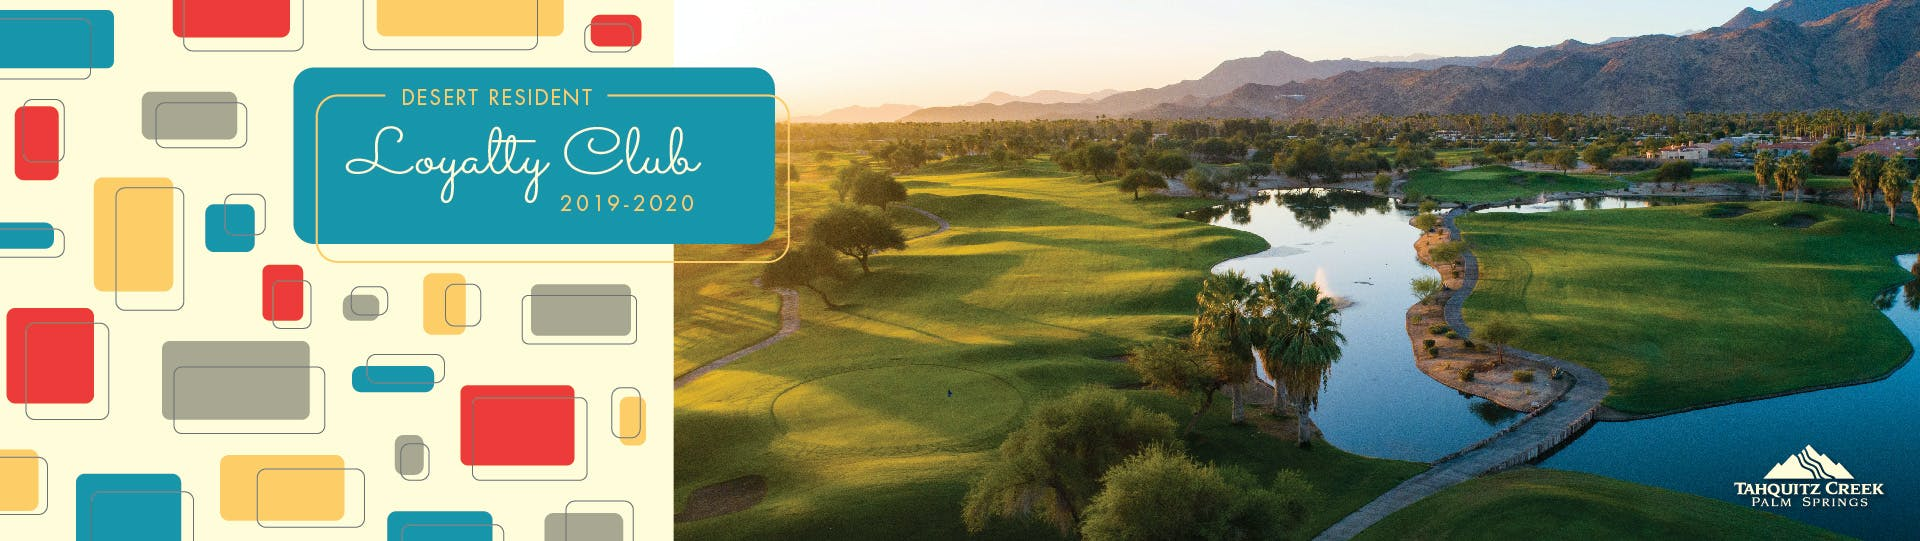 Desert Resident Loyalty Club 2019-2020 graphics and a view of the Resort Course.